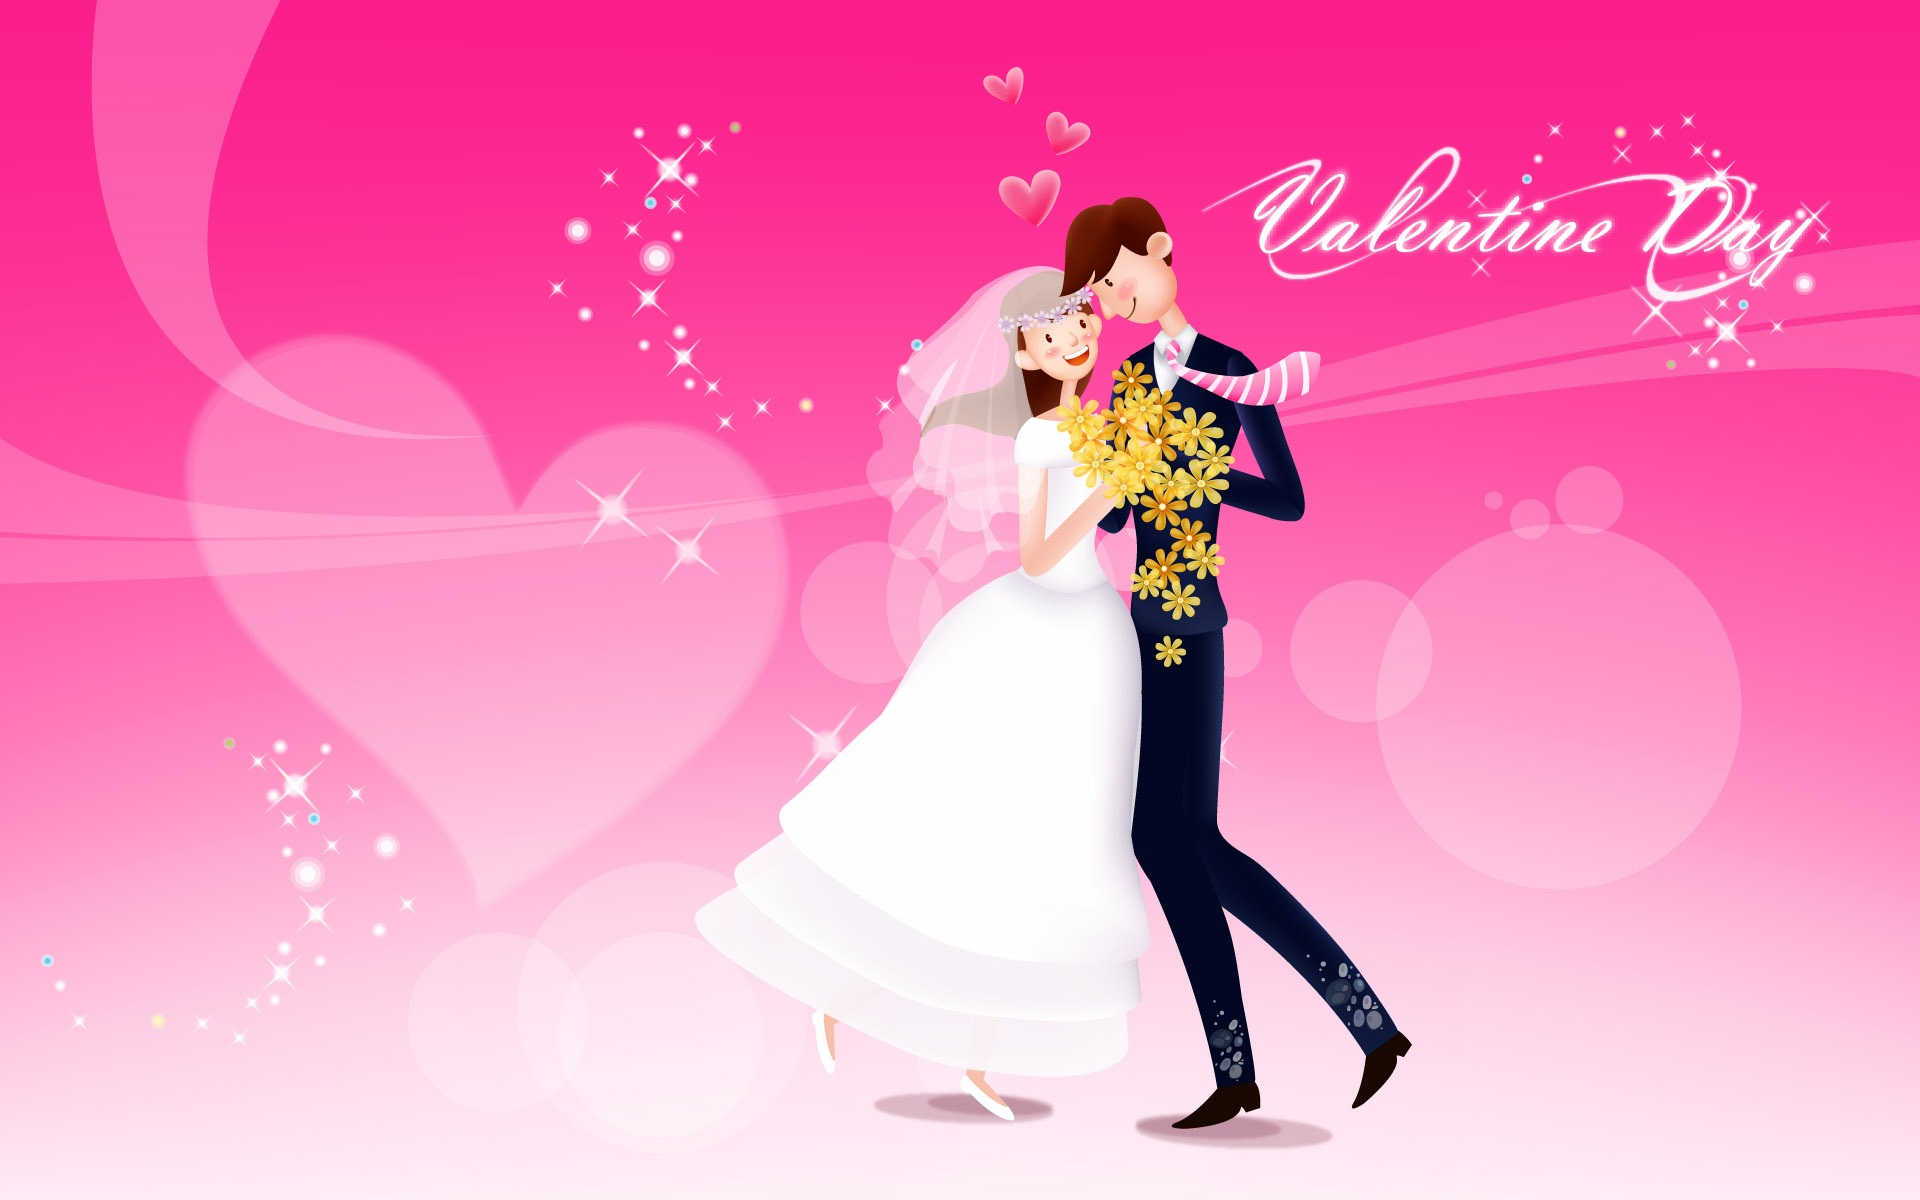 Love Dance Wallpaper Valentines Day Holidays Wallpapers In Jpg